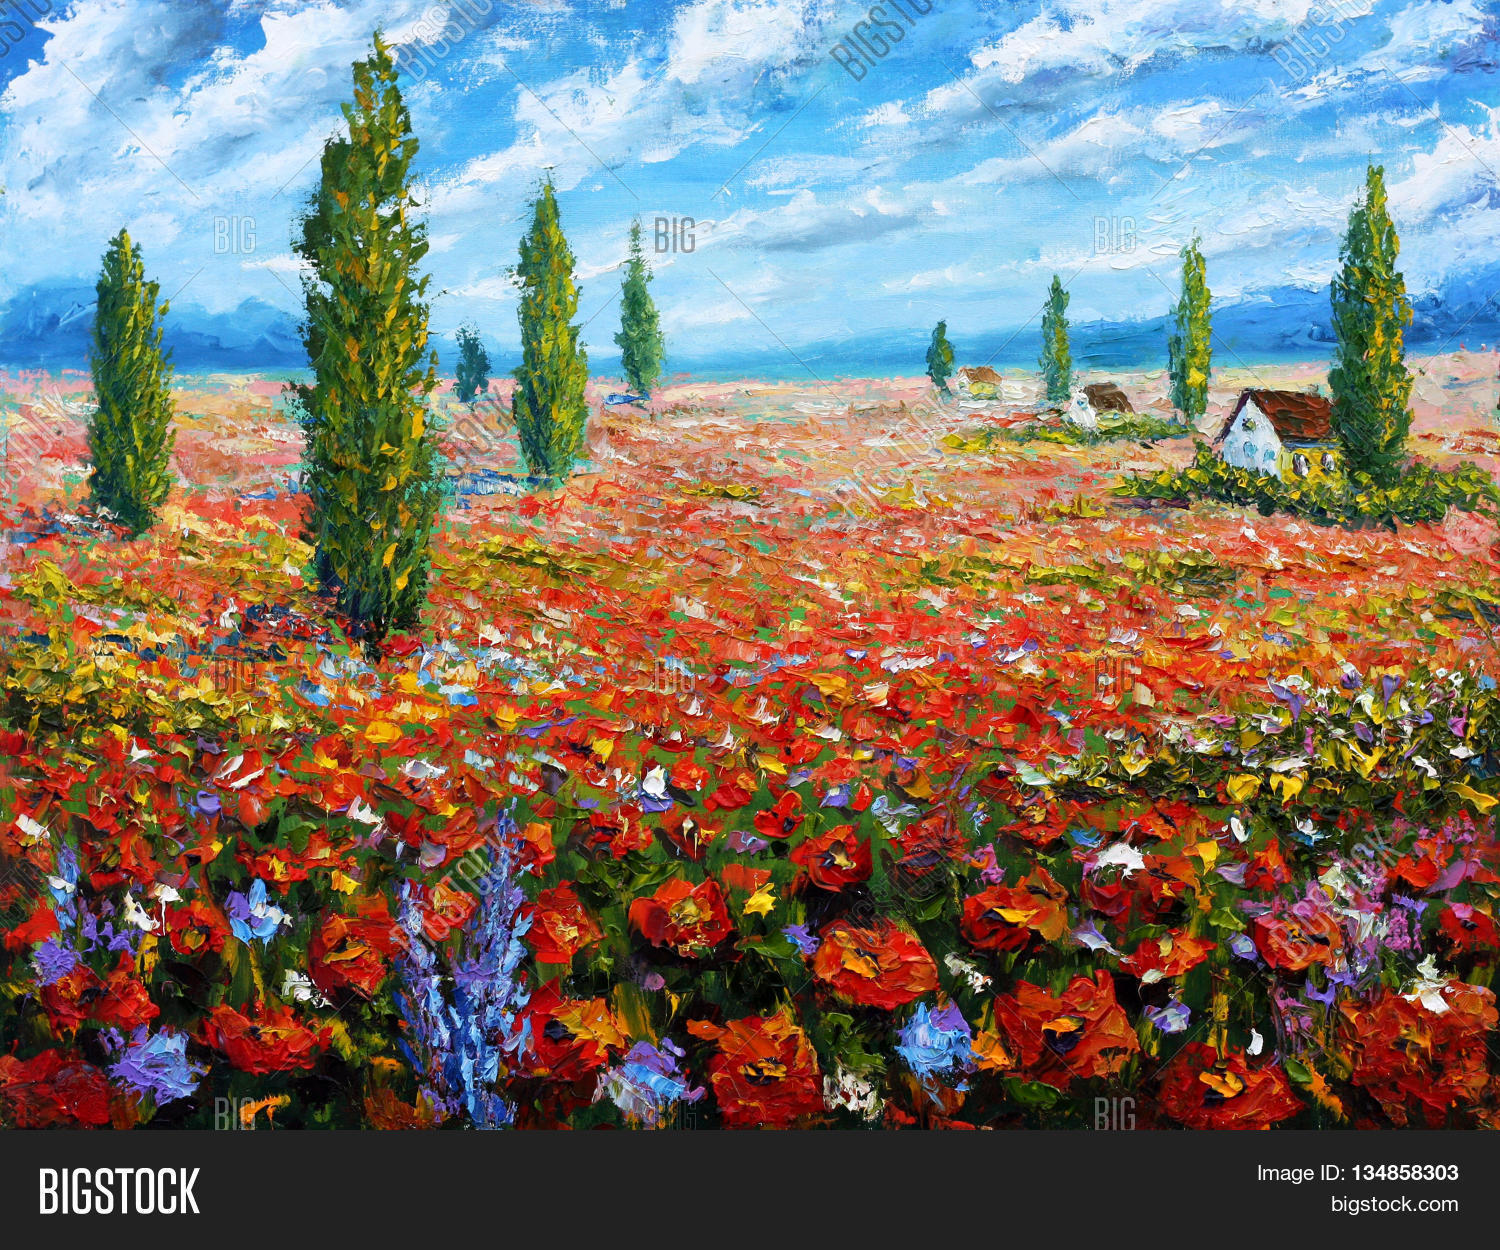 Flower Painting Field Image Photo Free Trial Bigstock